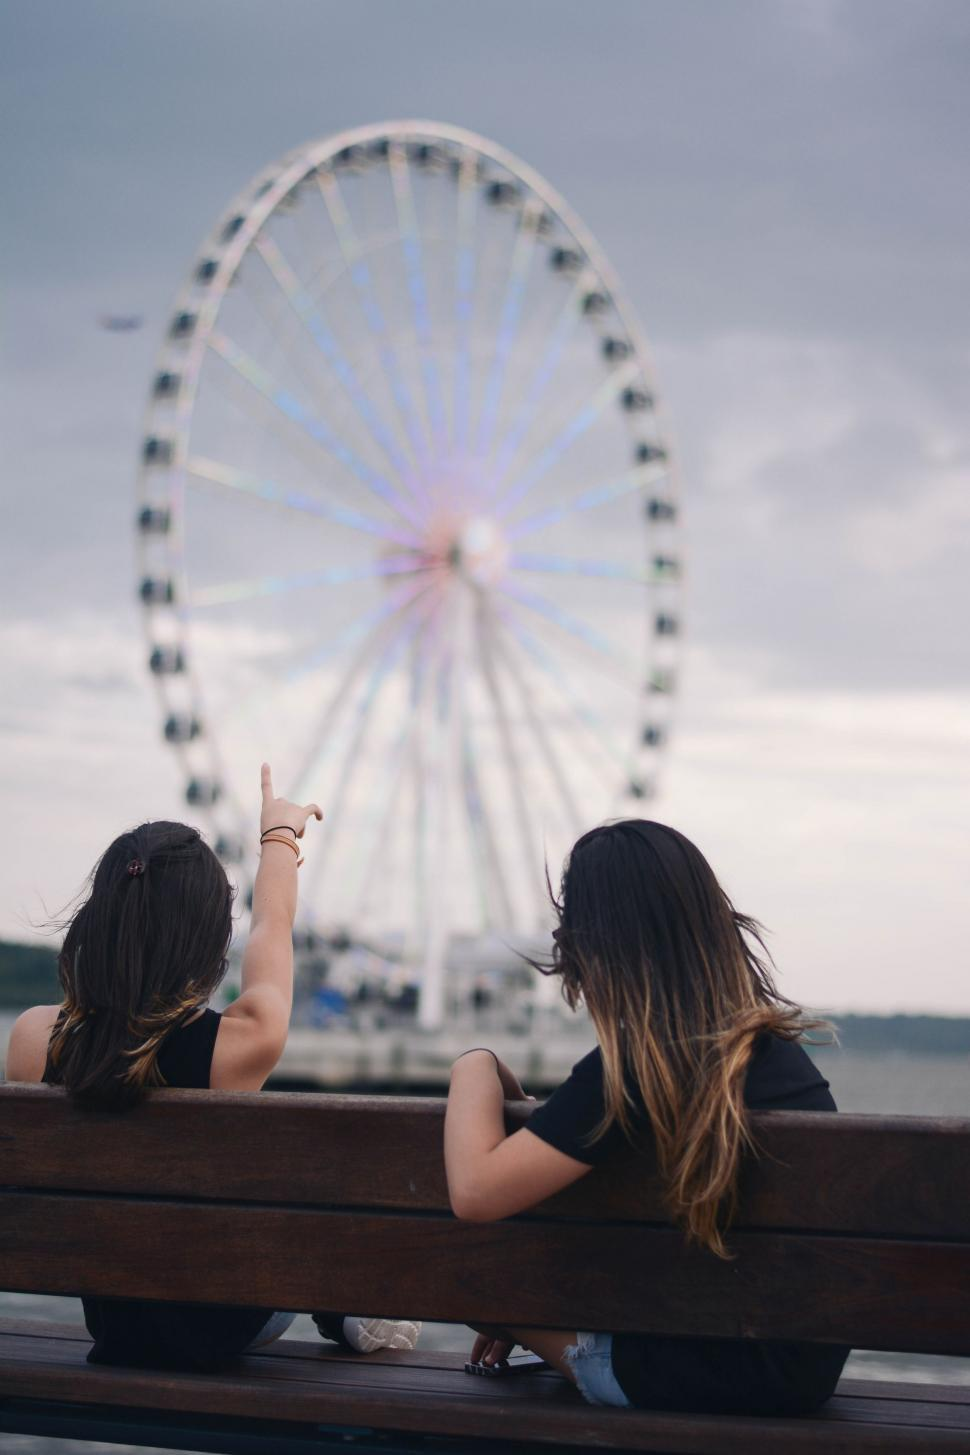 Download Free Stock Photo of Women Looking at Ferris Wheel